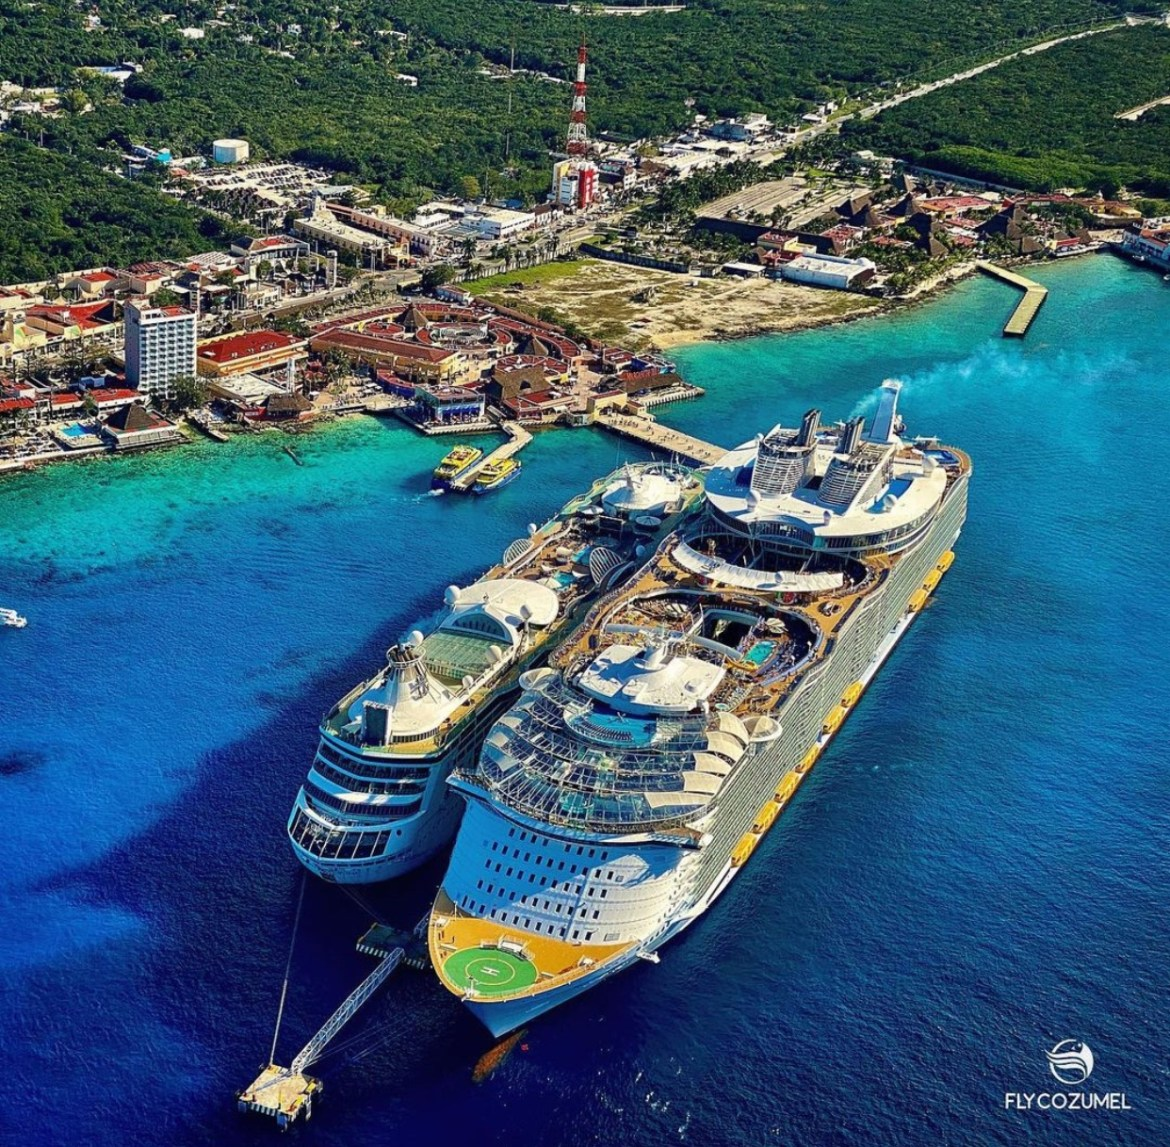 Cozumel approaches MSC Cruises to become home port